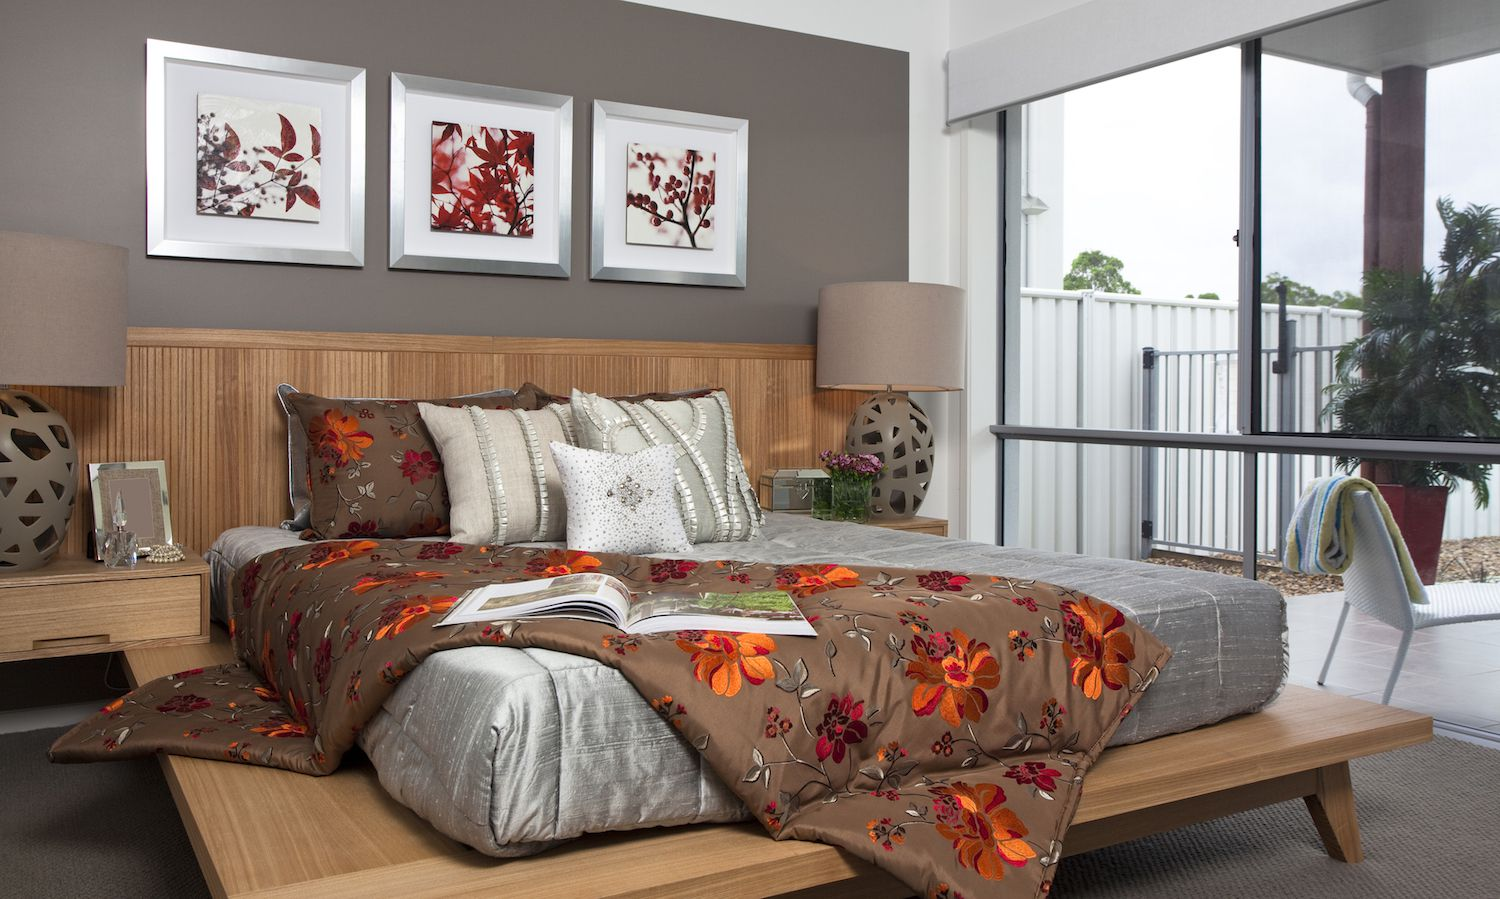 Cheap home staging ideas for frugal sellers - Zen bedroom ideas on a budget ...